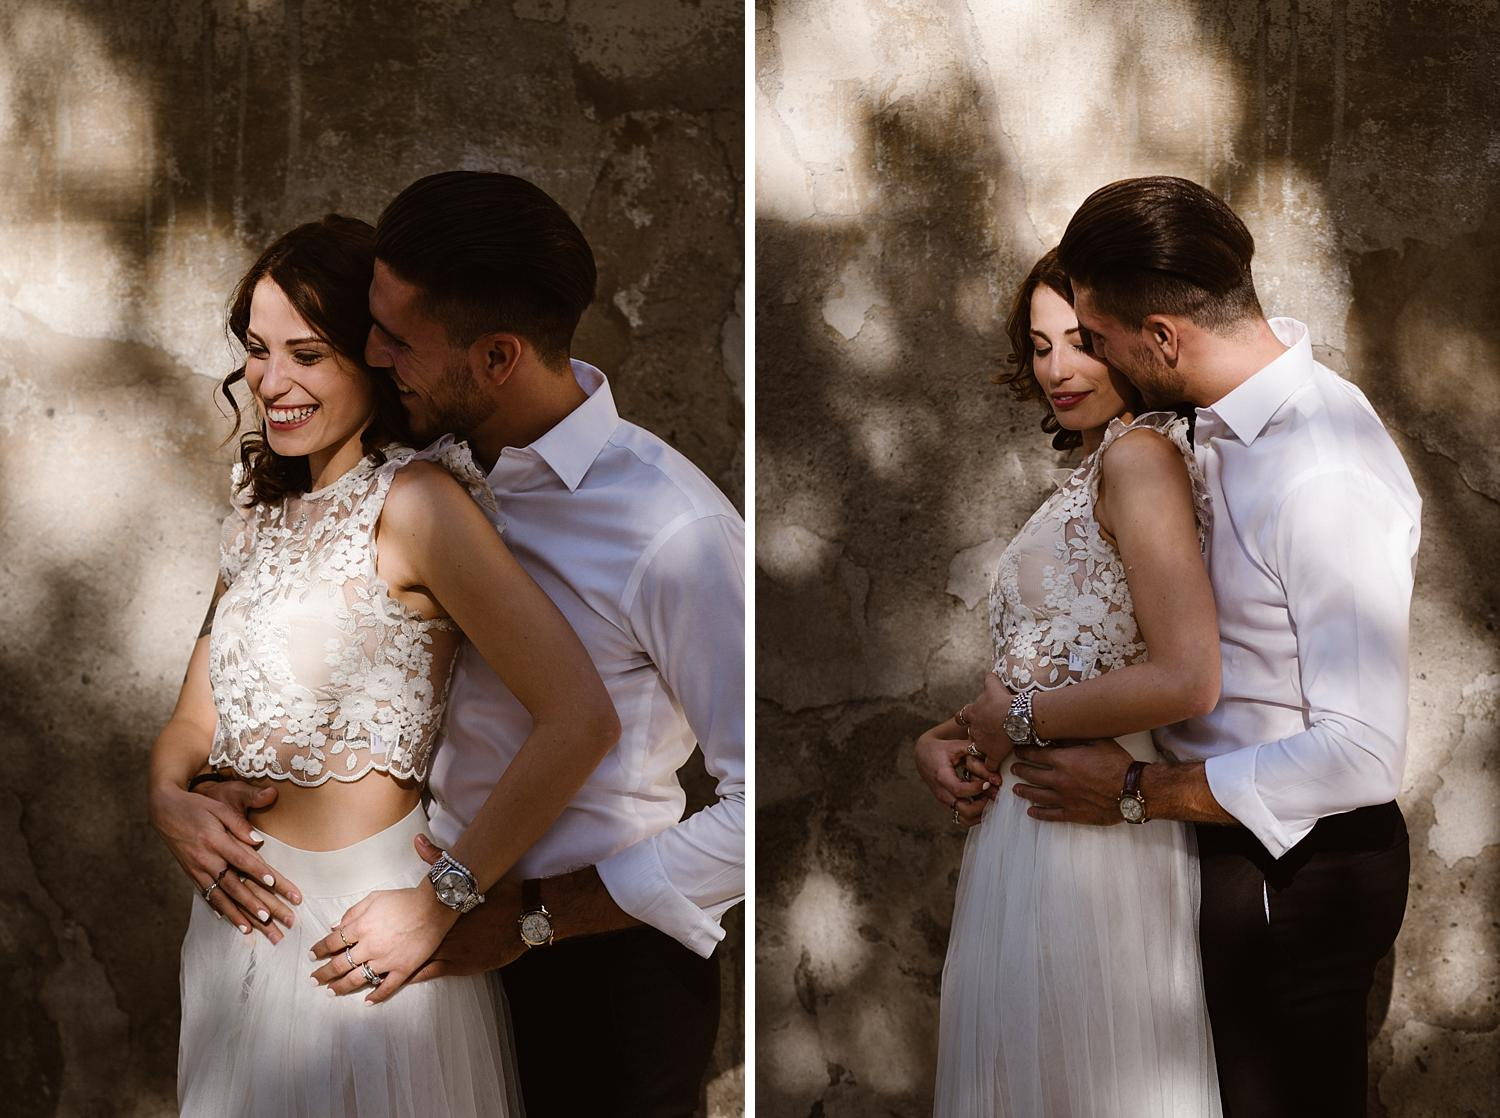 weddingphotographer florence 08 - Maddalena & Arturo - A Chic Anniversary Session in Florence